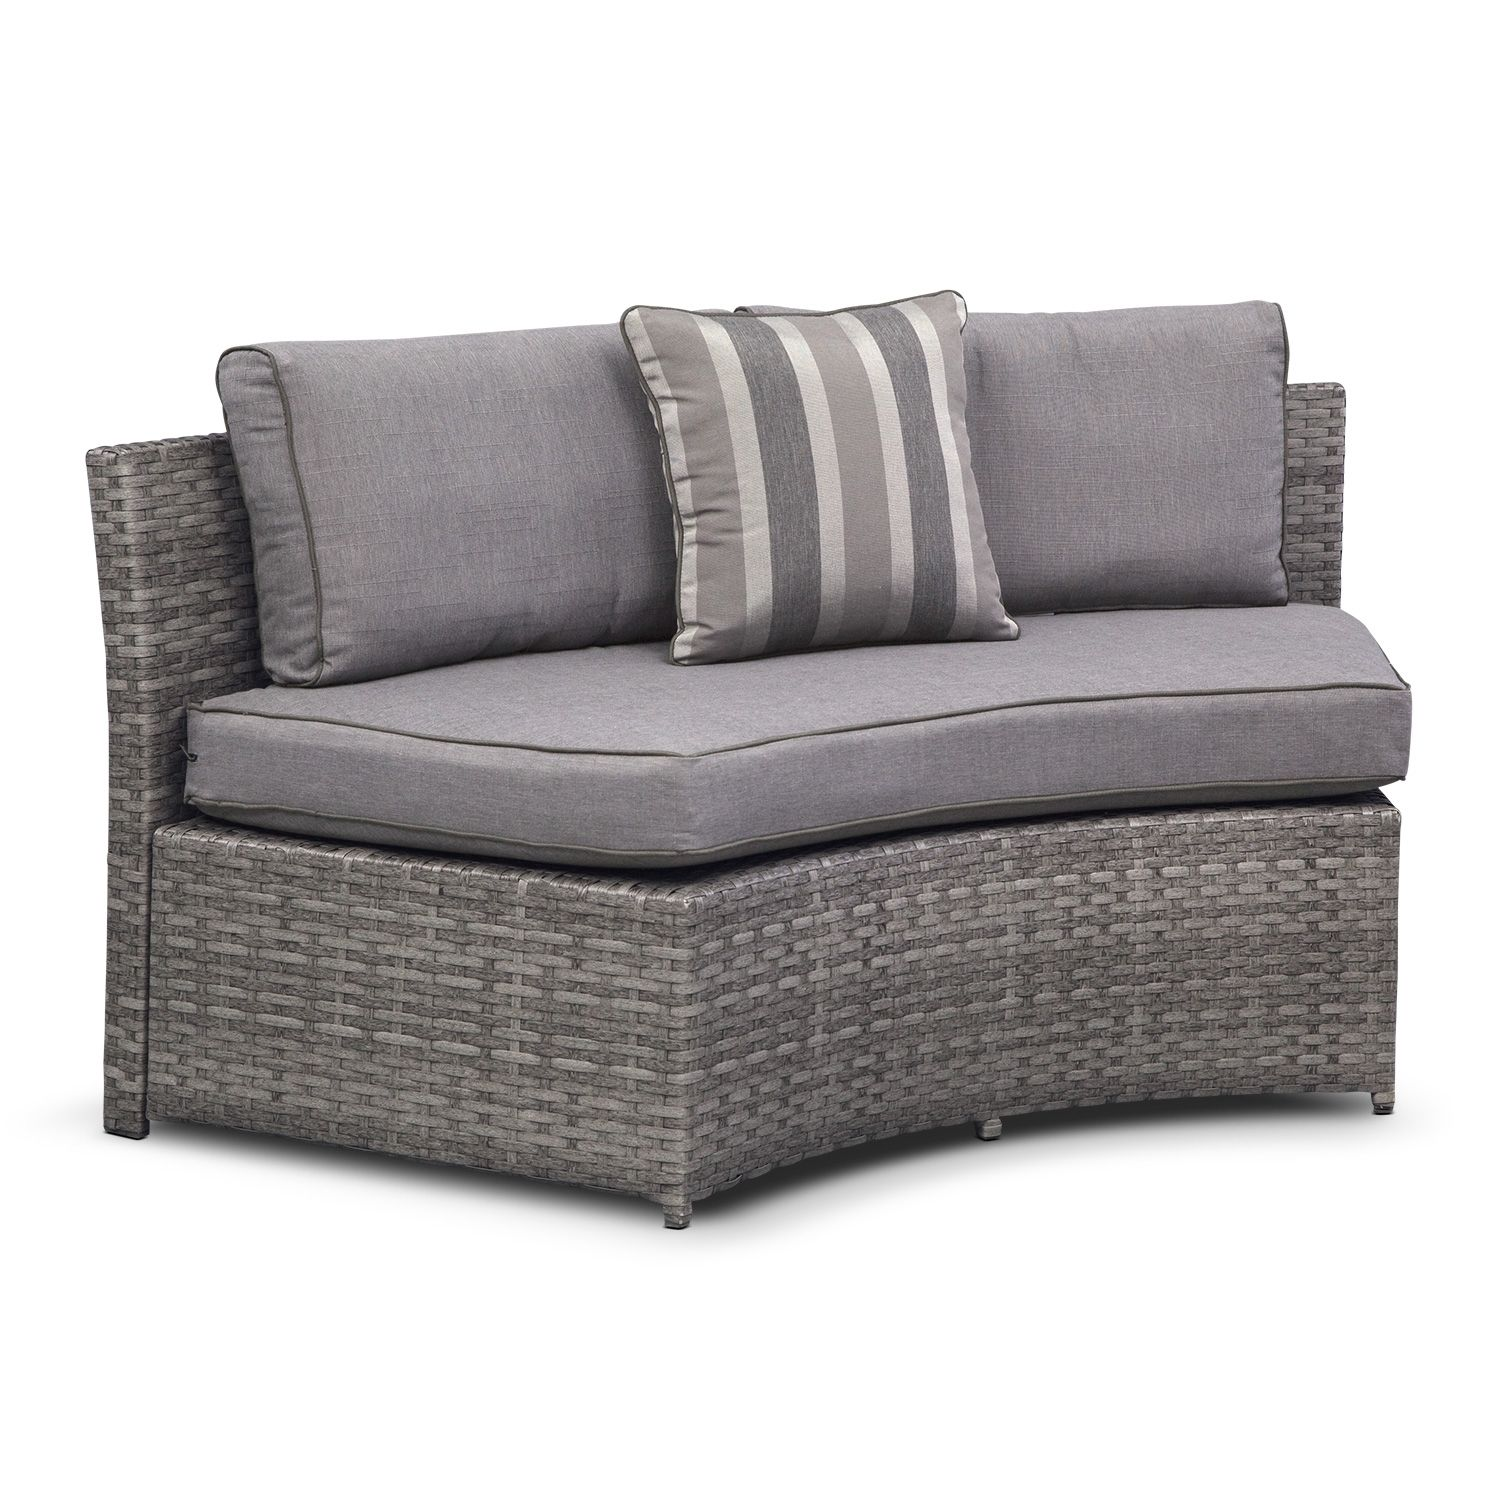 Calypso 5 Pc Outdoor Sectional